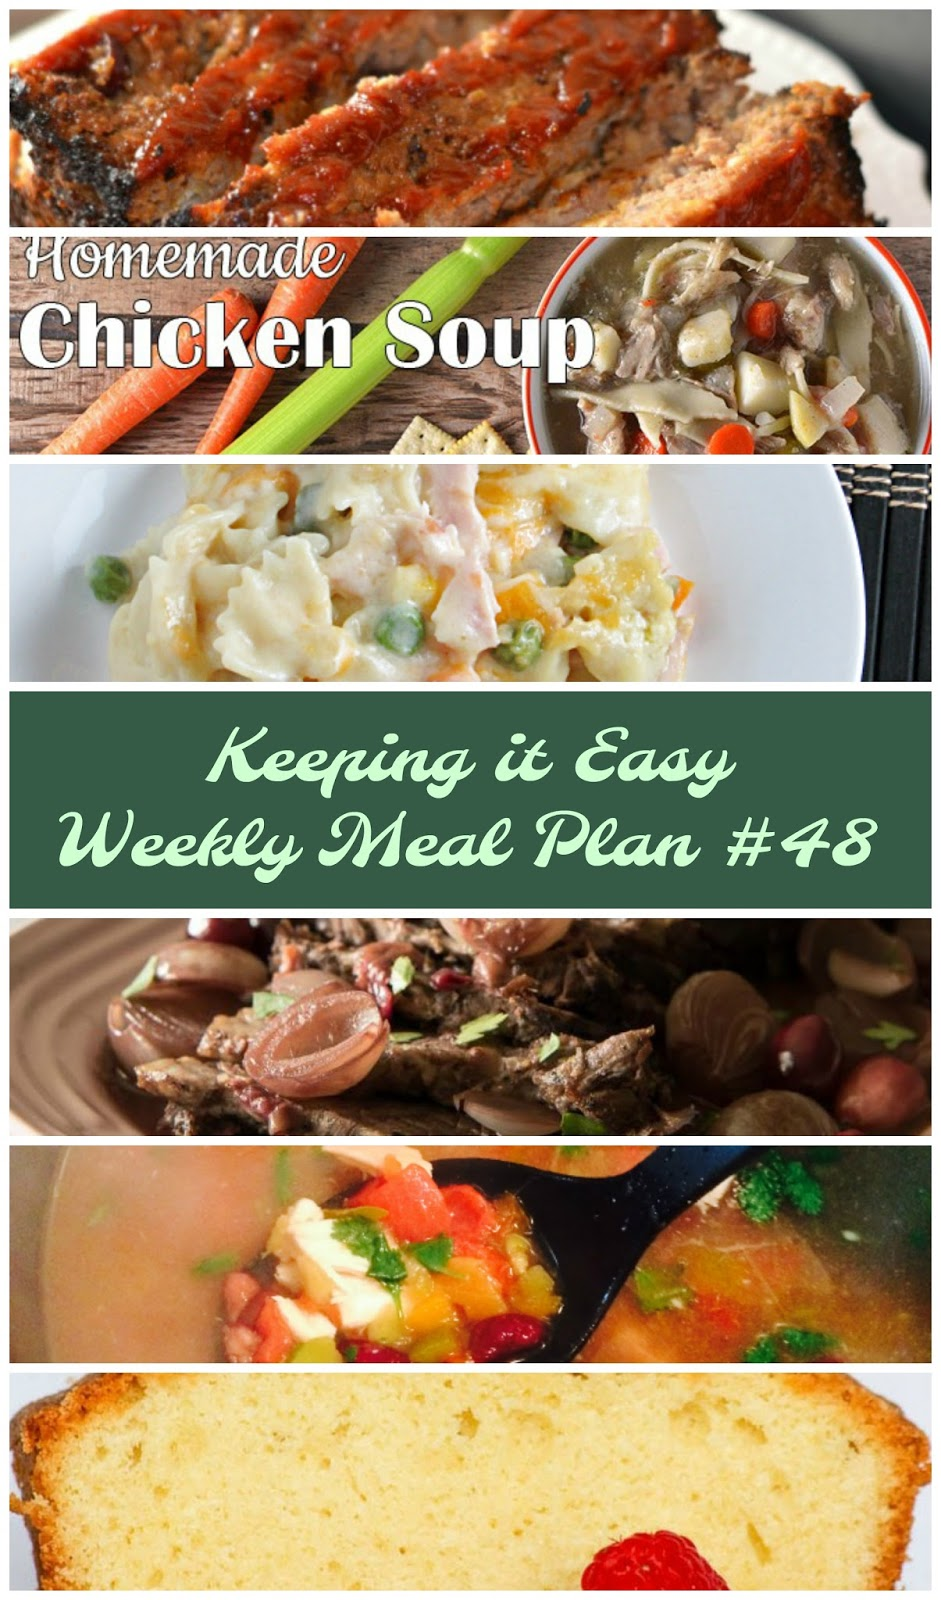 Easy Weekly Meal Plan #48 from My Fearless Kitchen. This week's meal plan includesSpinach & Tomato Veggie Omelet, Cranberry Meatloaf, Easy Homemade Chicken Soup, Creamy Turkey & Noodles, Cranberry Orange-Braised Instant Pot Beef Brisket, Green Chili & Chicken Soup, and Butter Pound Cake.